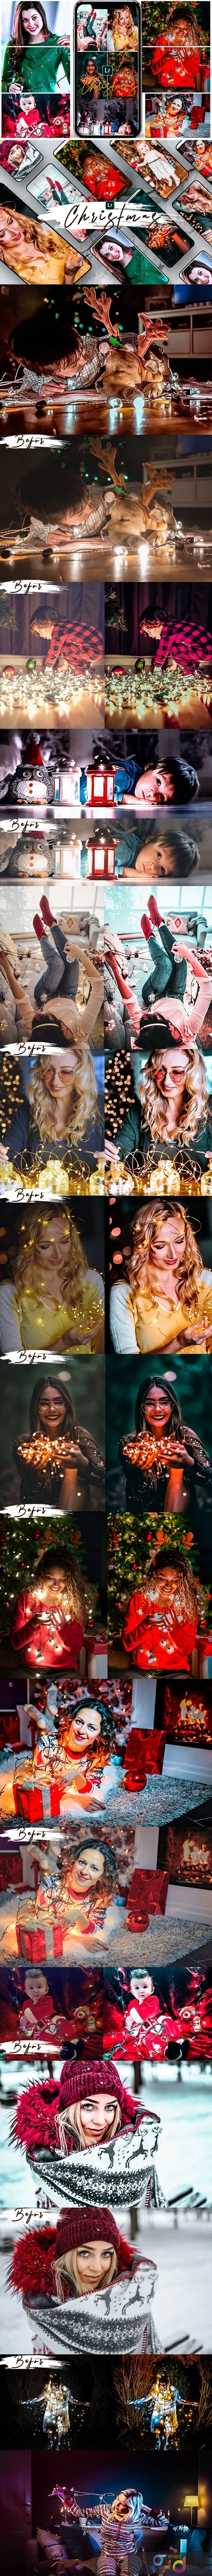 Christmas Lightroom Presets Desktop & Mobile 25294549 1